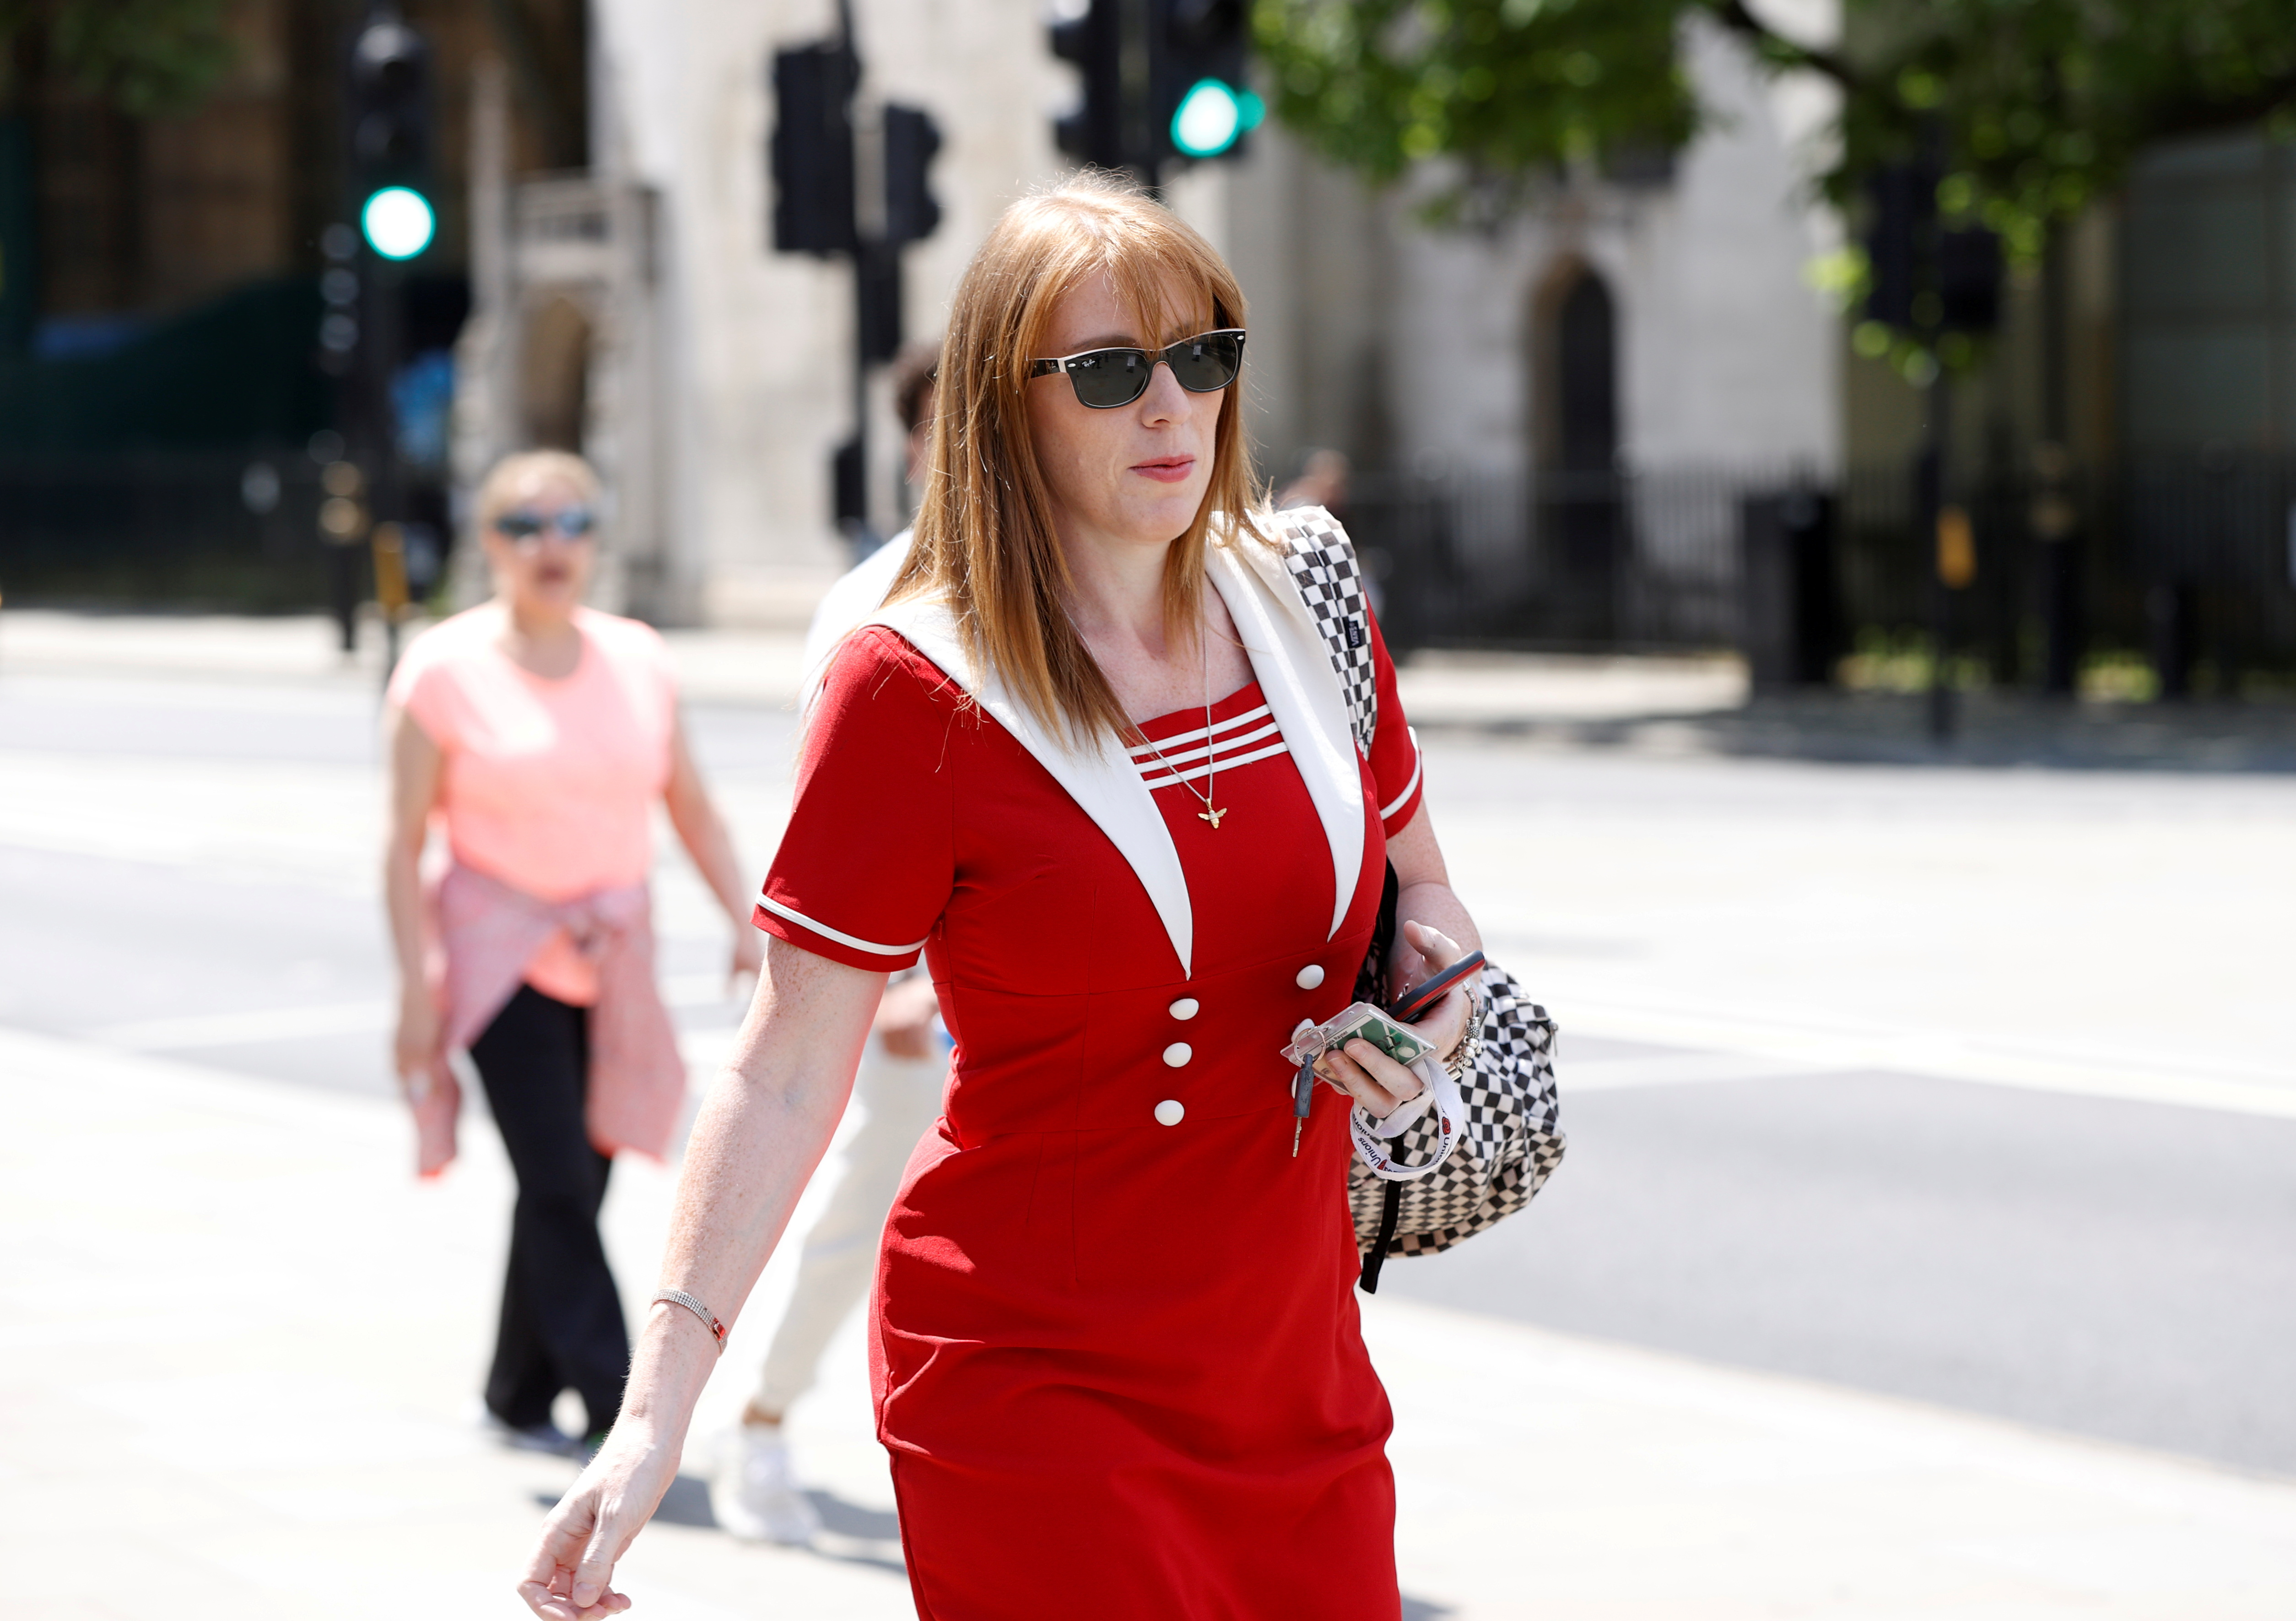 British Labour Party deputy leader Angela Rayner is seen outside parliament in London, June 2, 2020. REUTERS/John Sibley